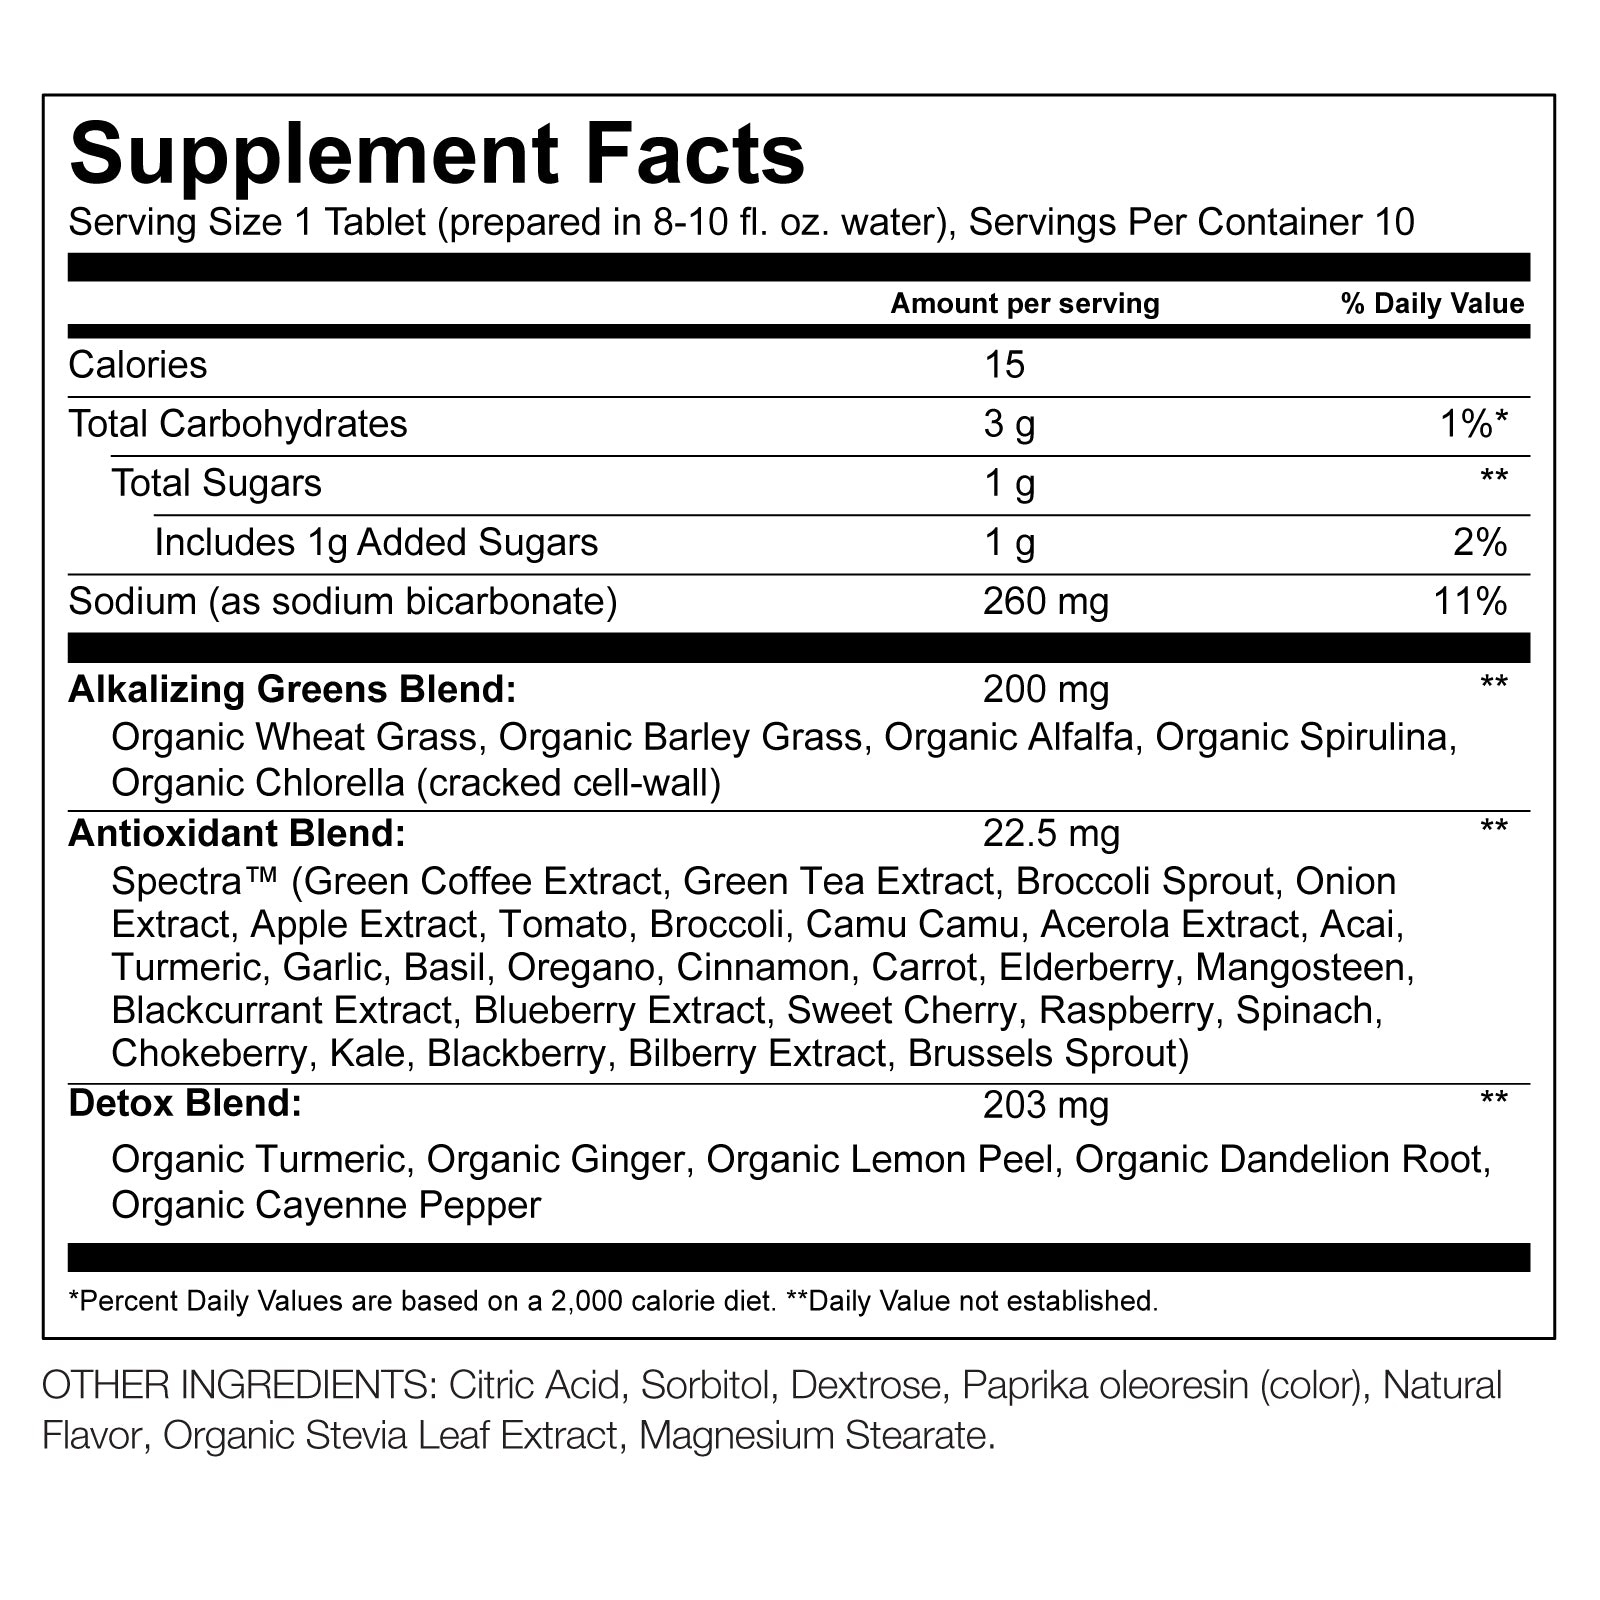 Orange Detox Green Superfood Effervescent Nutritional Information By Amazing Grass